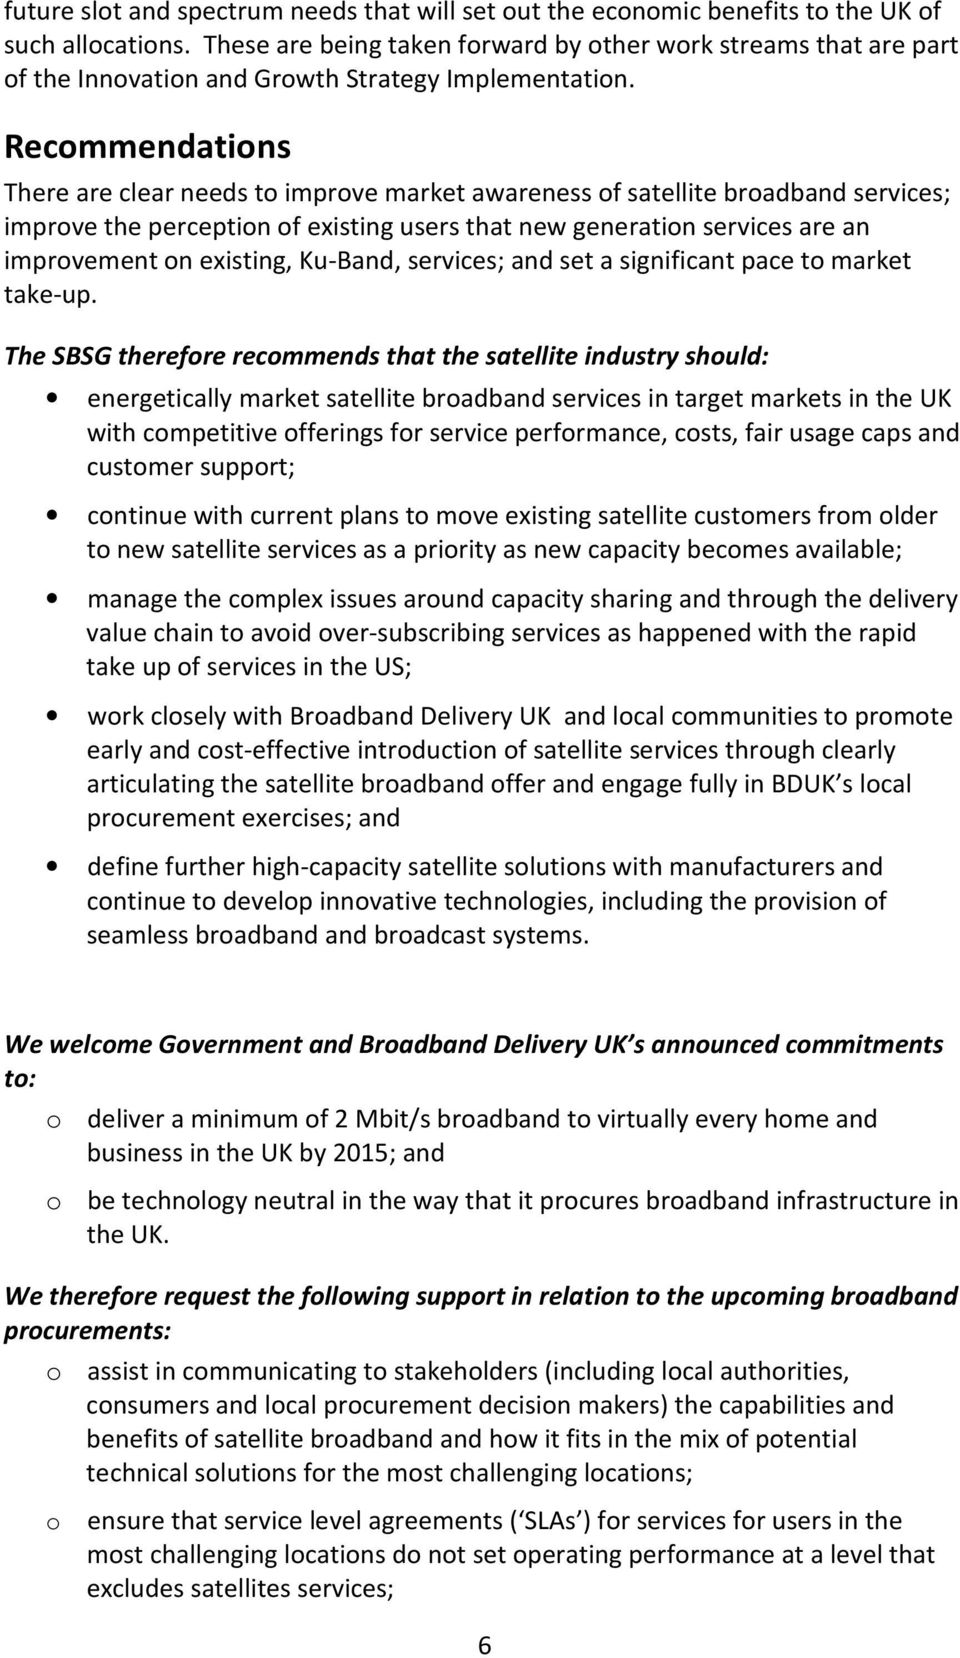 Recommendations There are clear needs to improve market awareness of satellite broadband services; improve the perception of existing users that new generation services are an improvement on